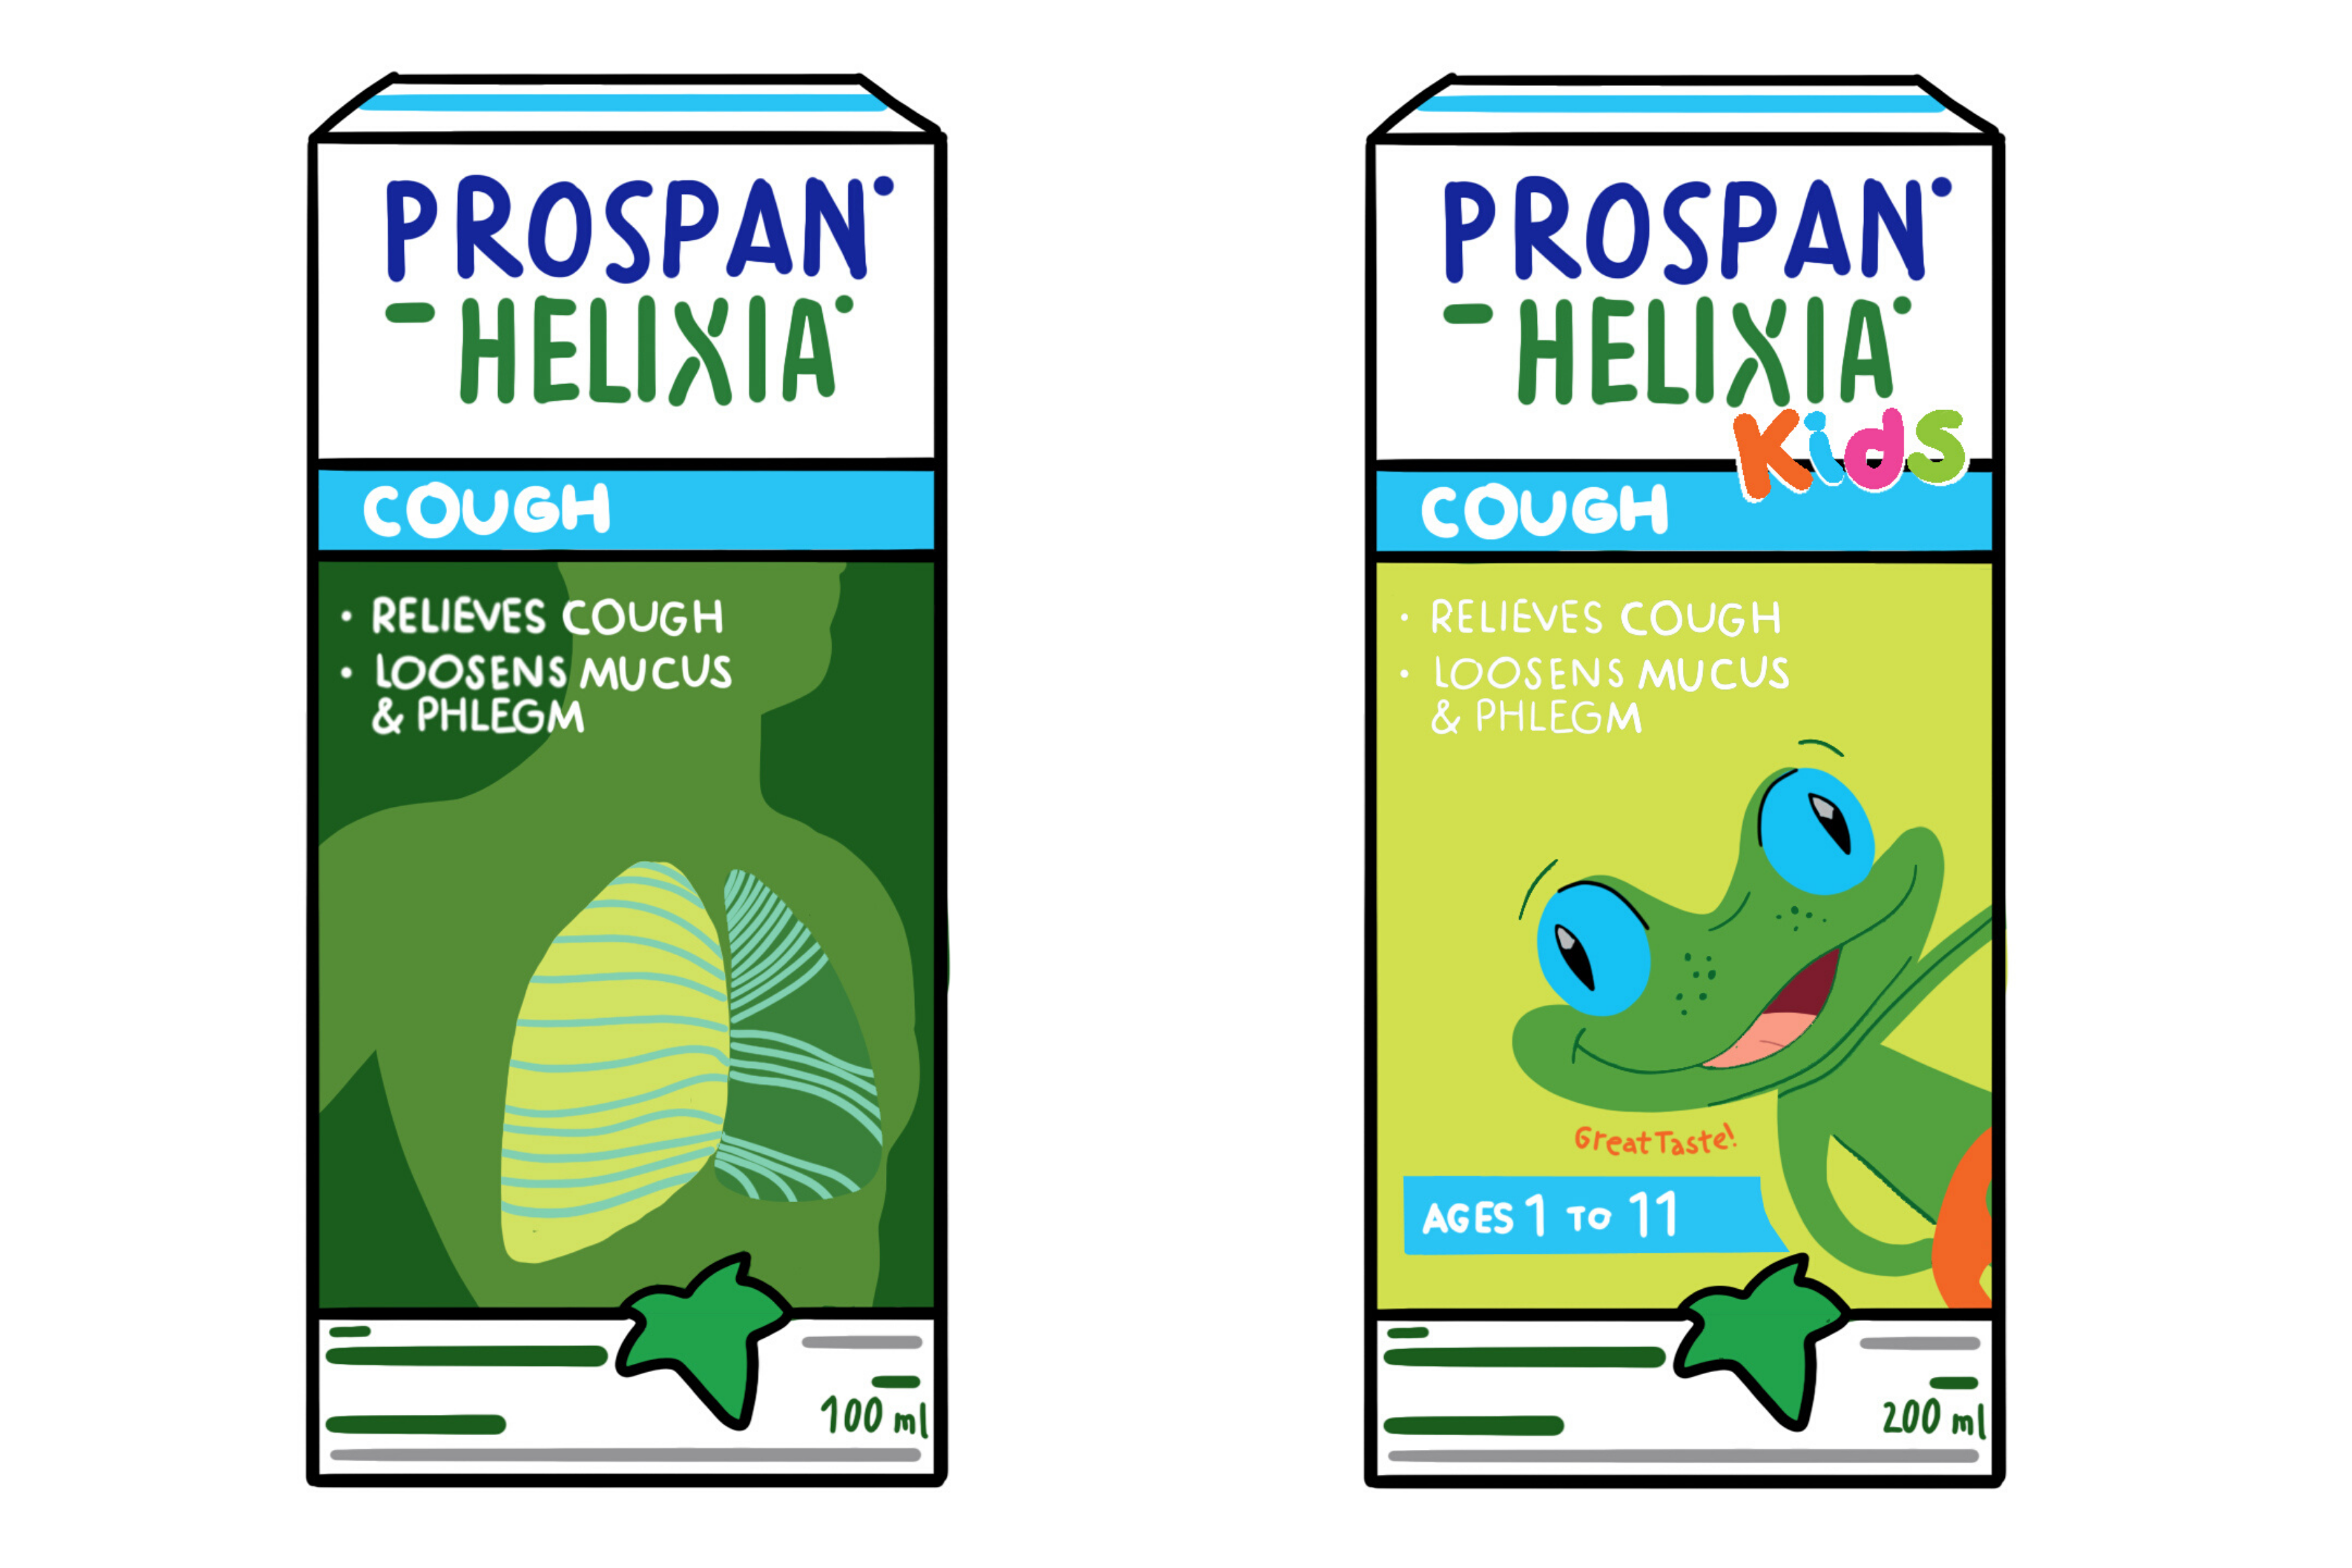 Prospan by Helixia: Review of The Natural Cough Product on the Block